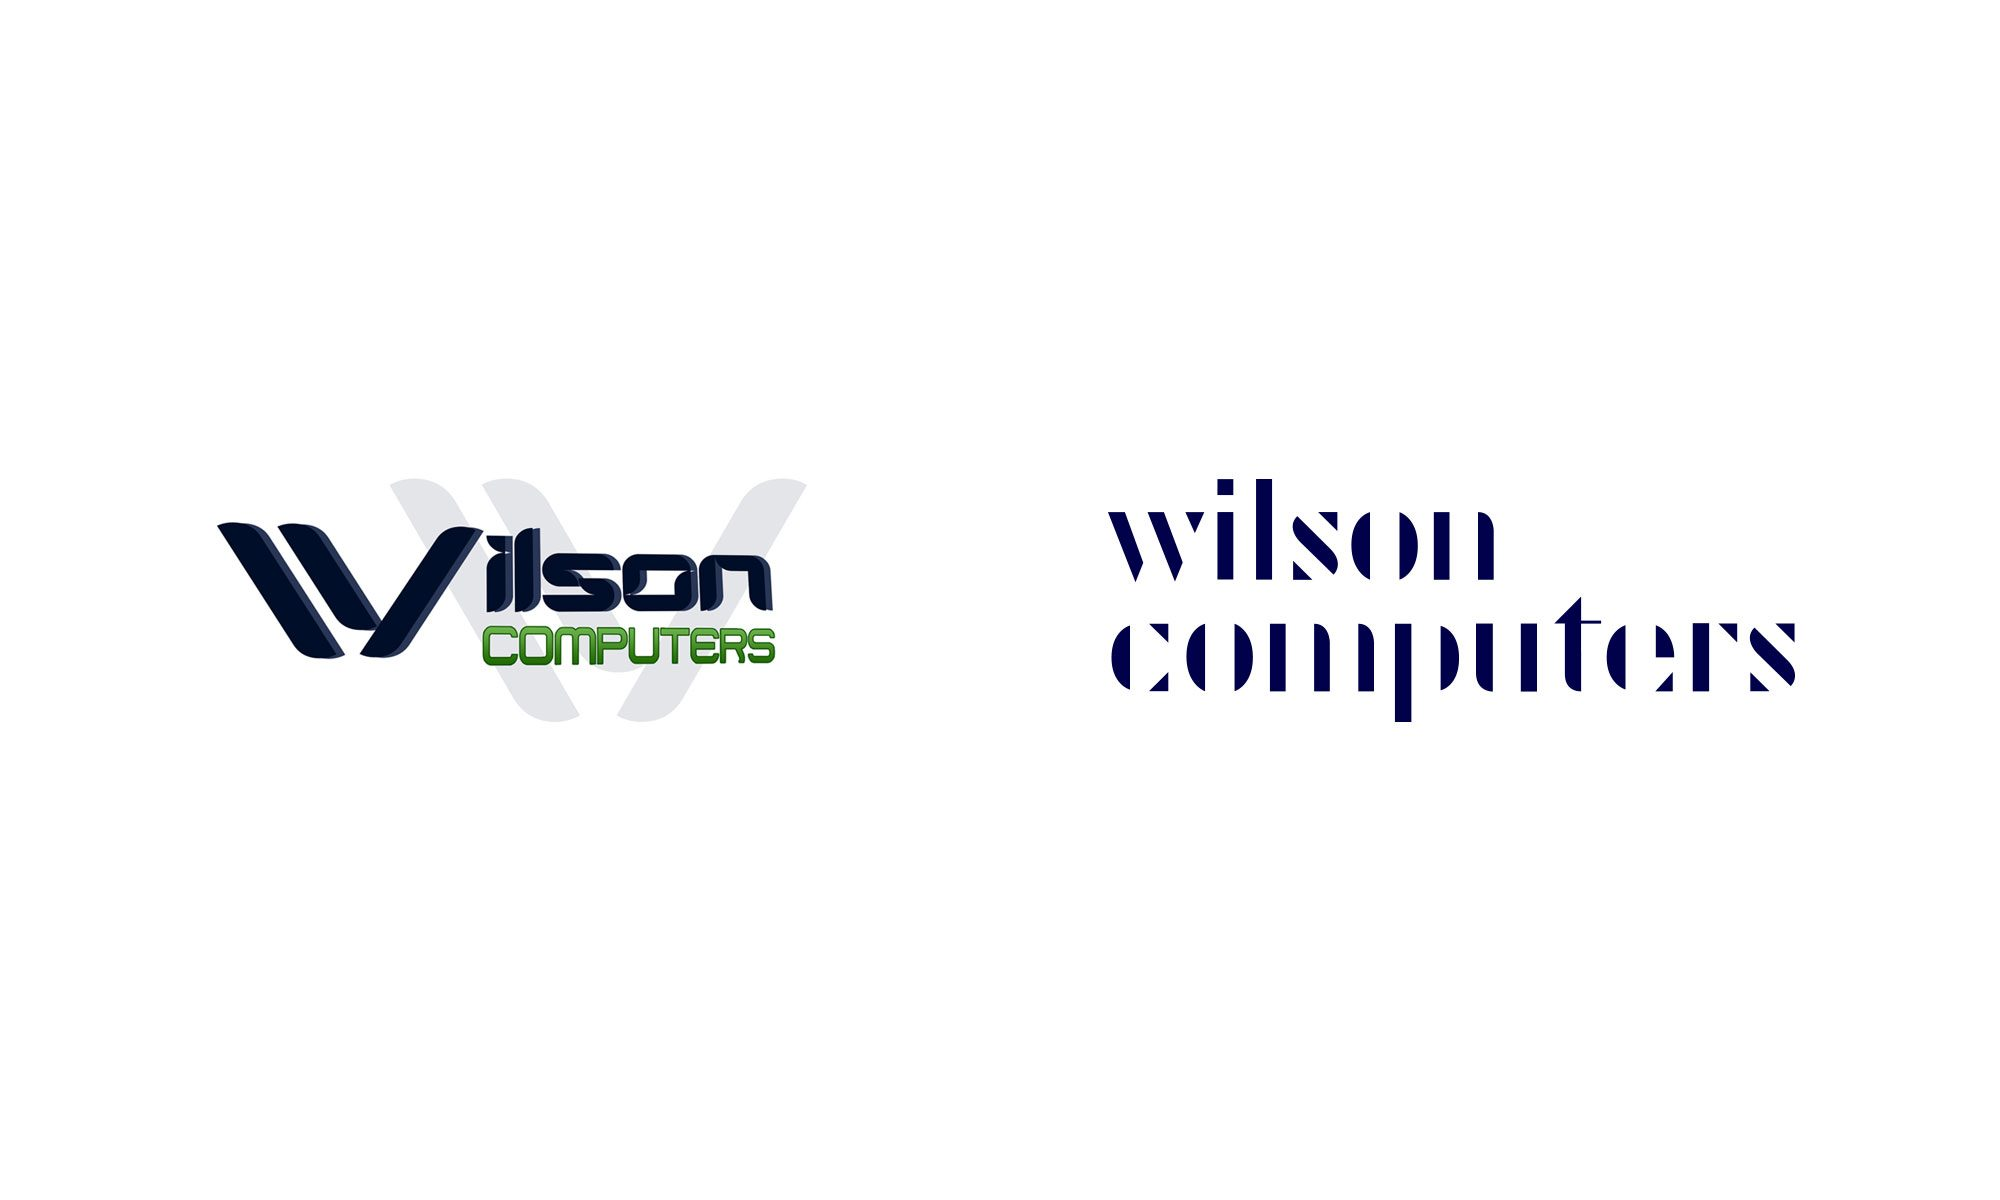 Wilson Computers logo old new